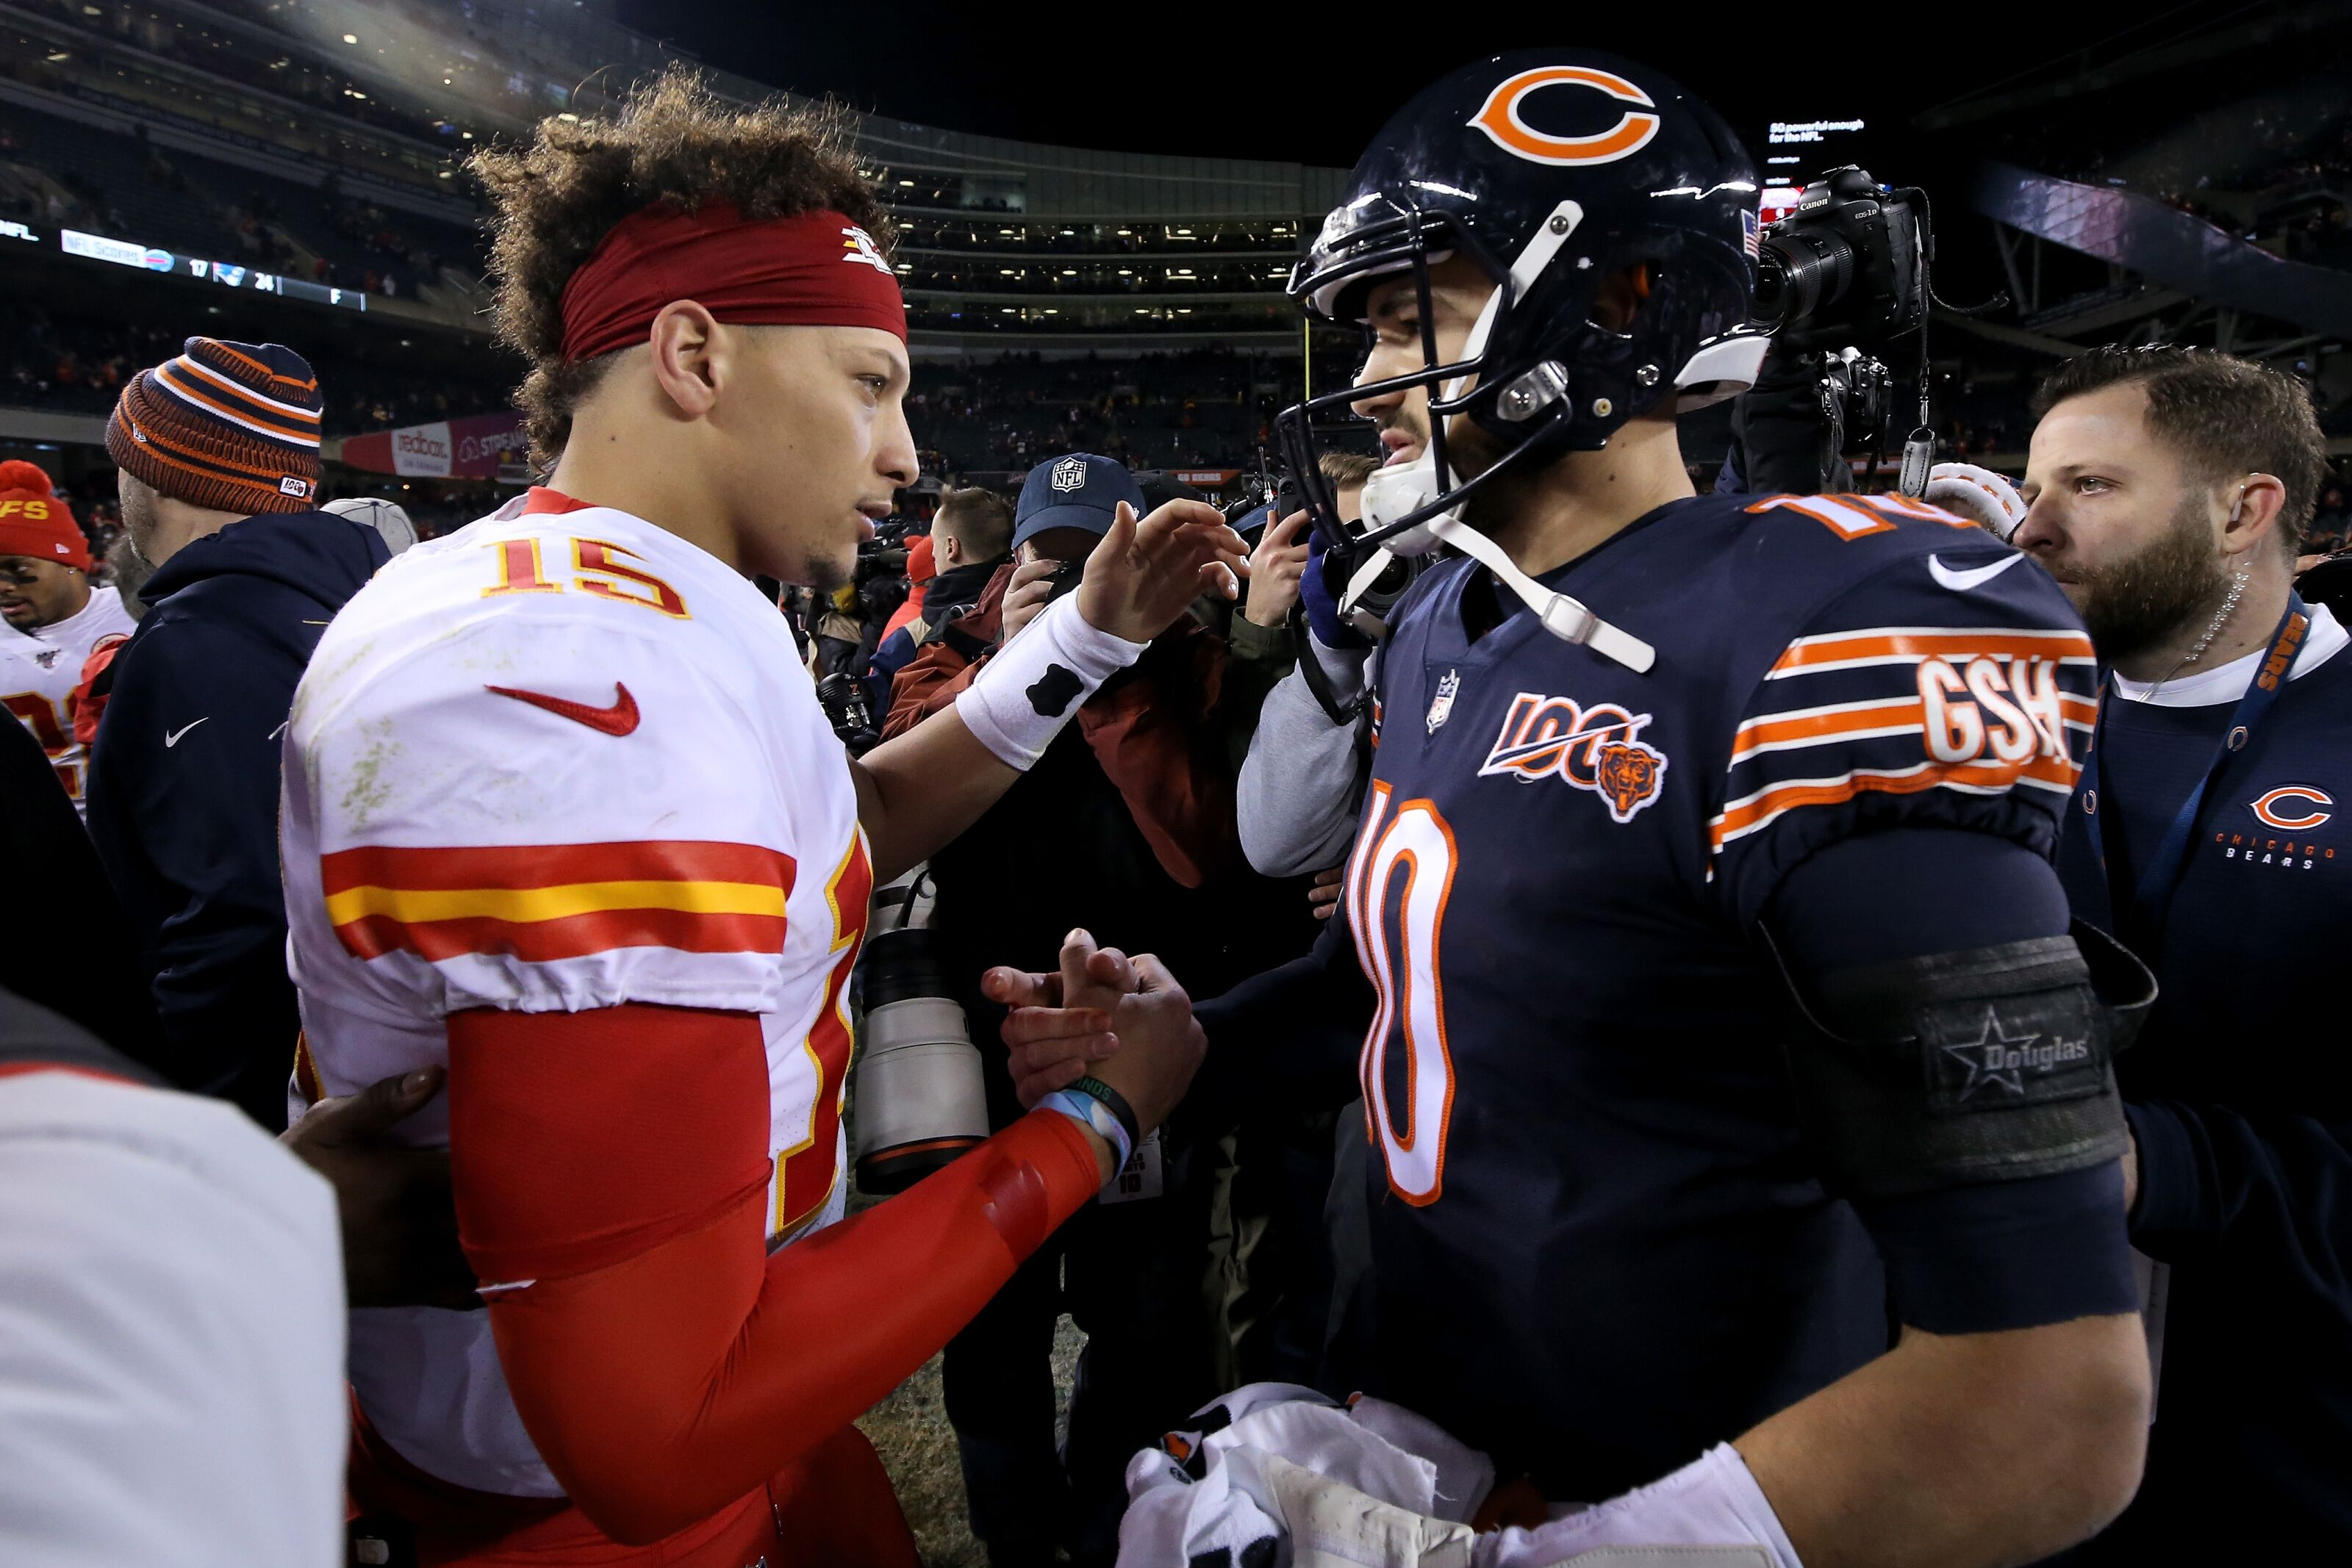 """Chicago Bears: """"Would you rather"""" scenario game"""